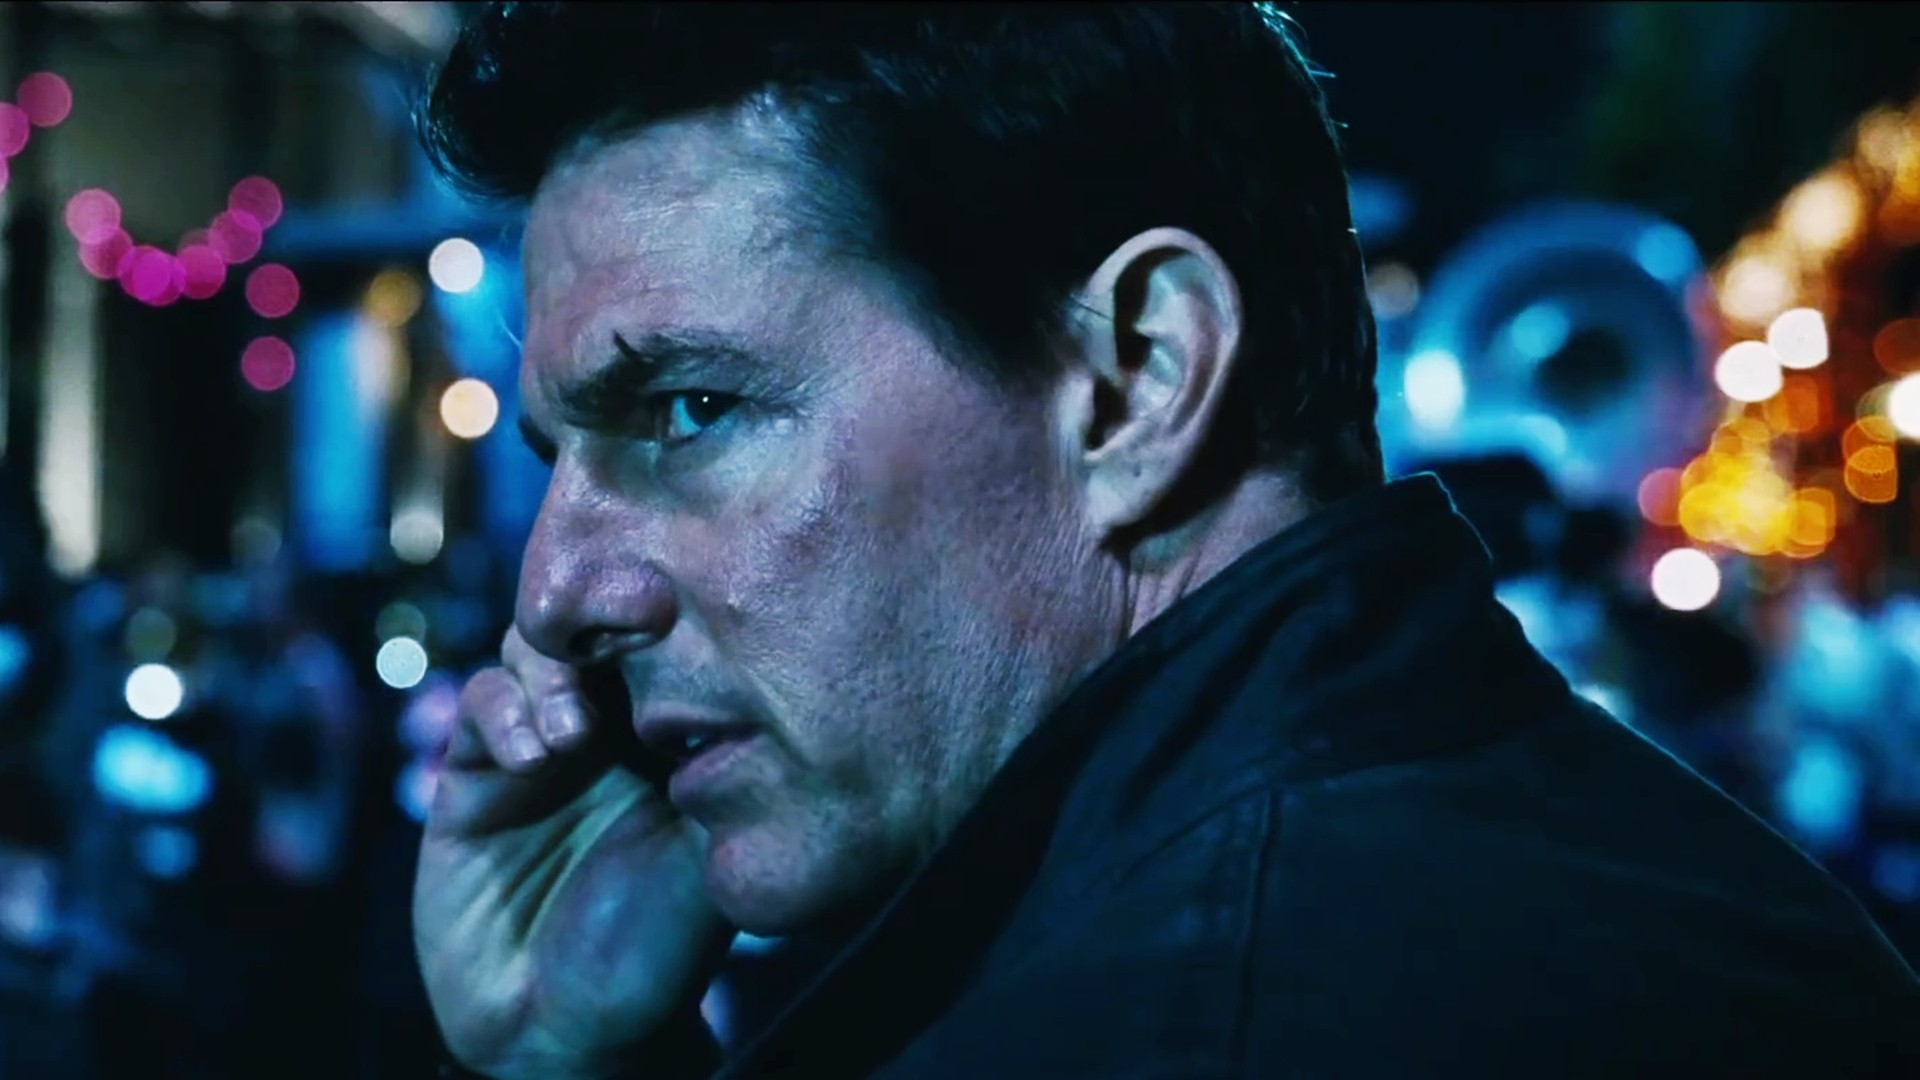 Tom Cruise In Jack Reacher Never Go Back Wallpaper 03136   Baltana 1920x1080